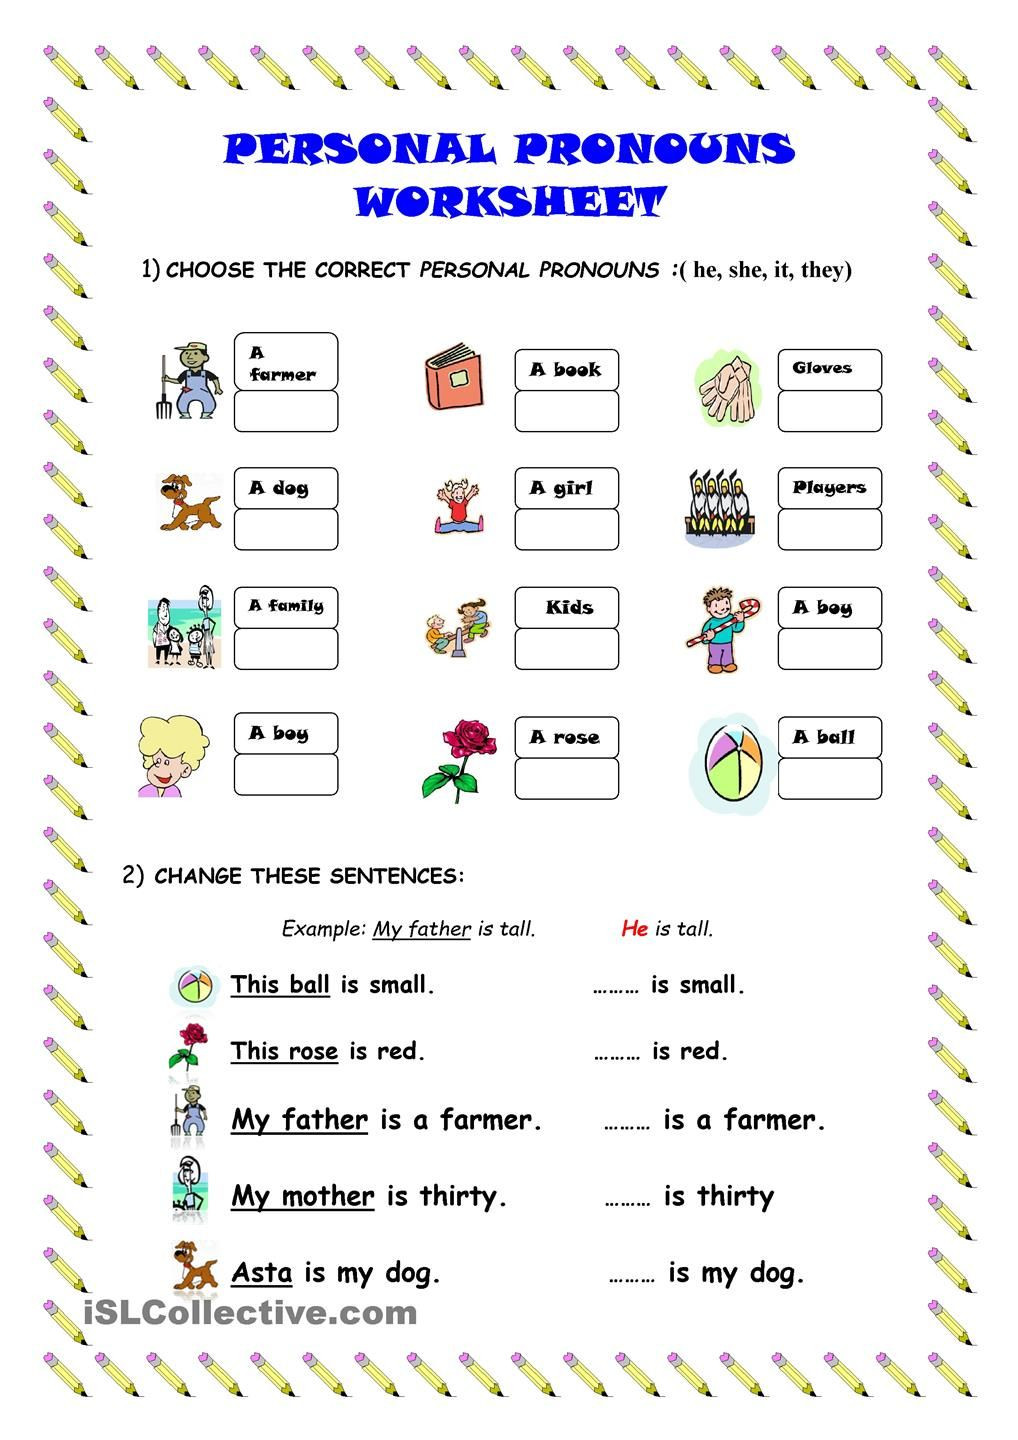 Pronoun Worksheets Second Grade Personal Pronouns Worksheet